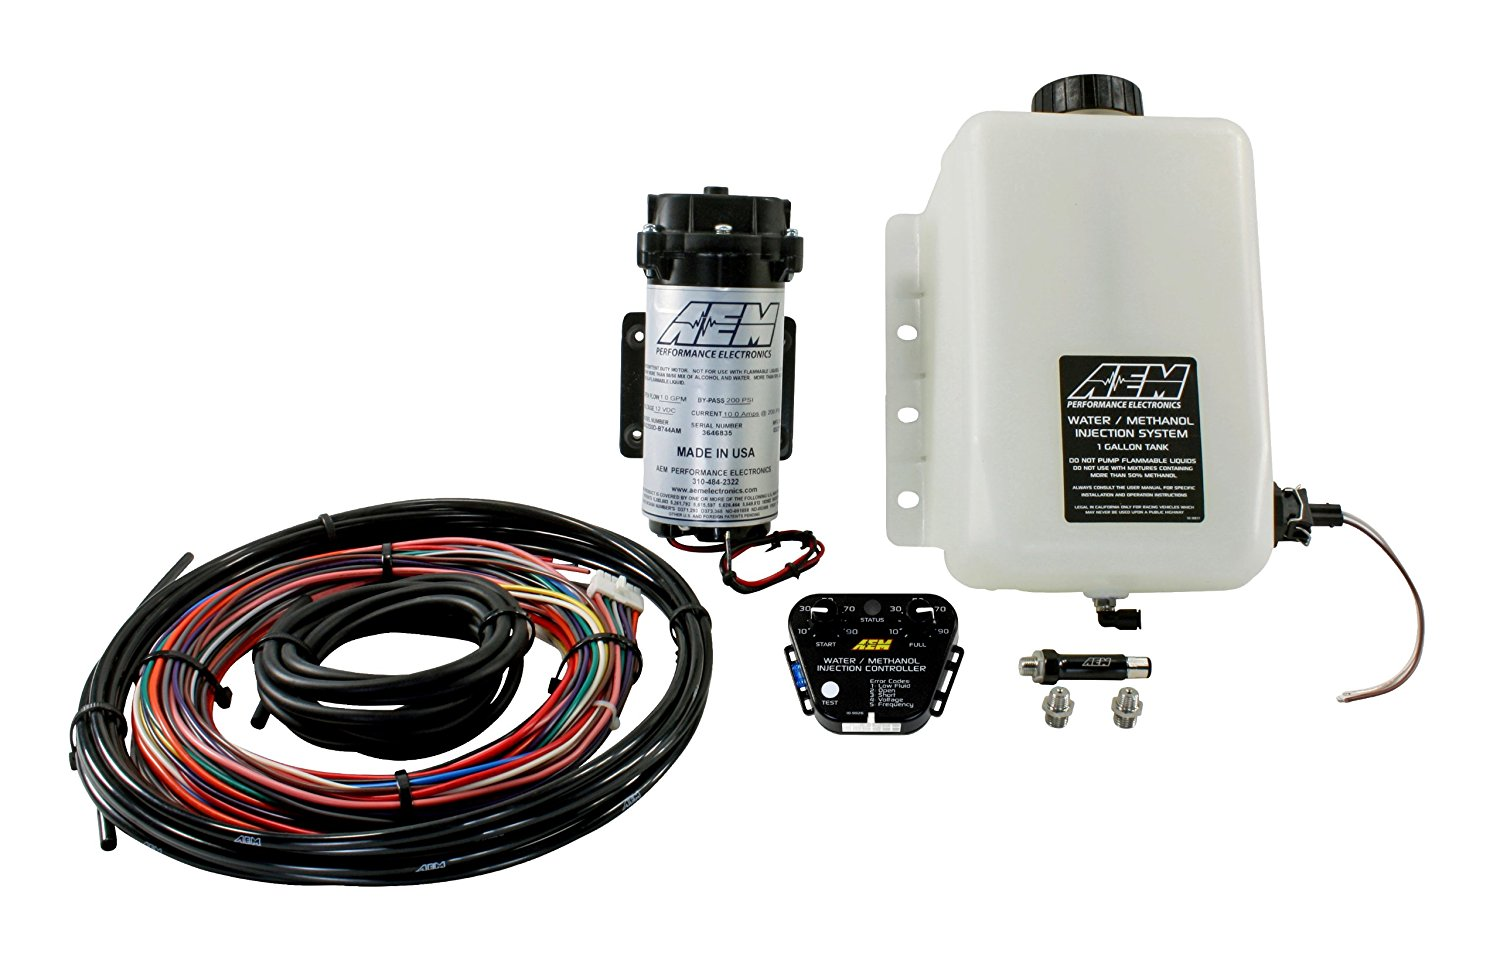 AEM V2 1-Gallon Water/Methanol Injection Kit with Multi-Input Controller for Corvette, Camaro and others